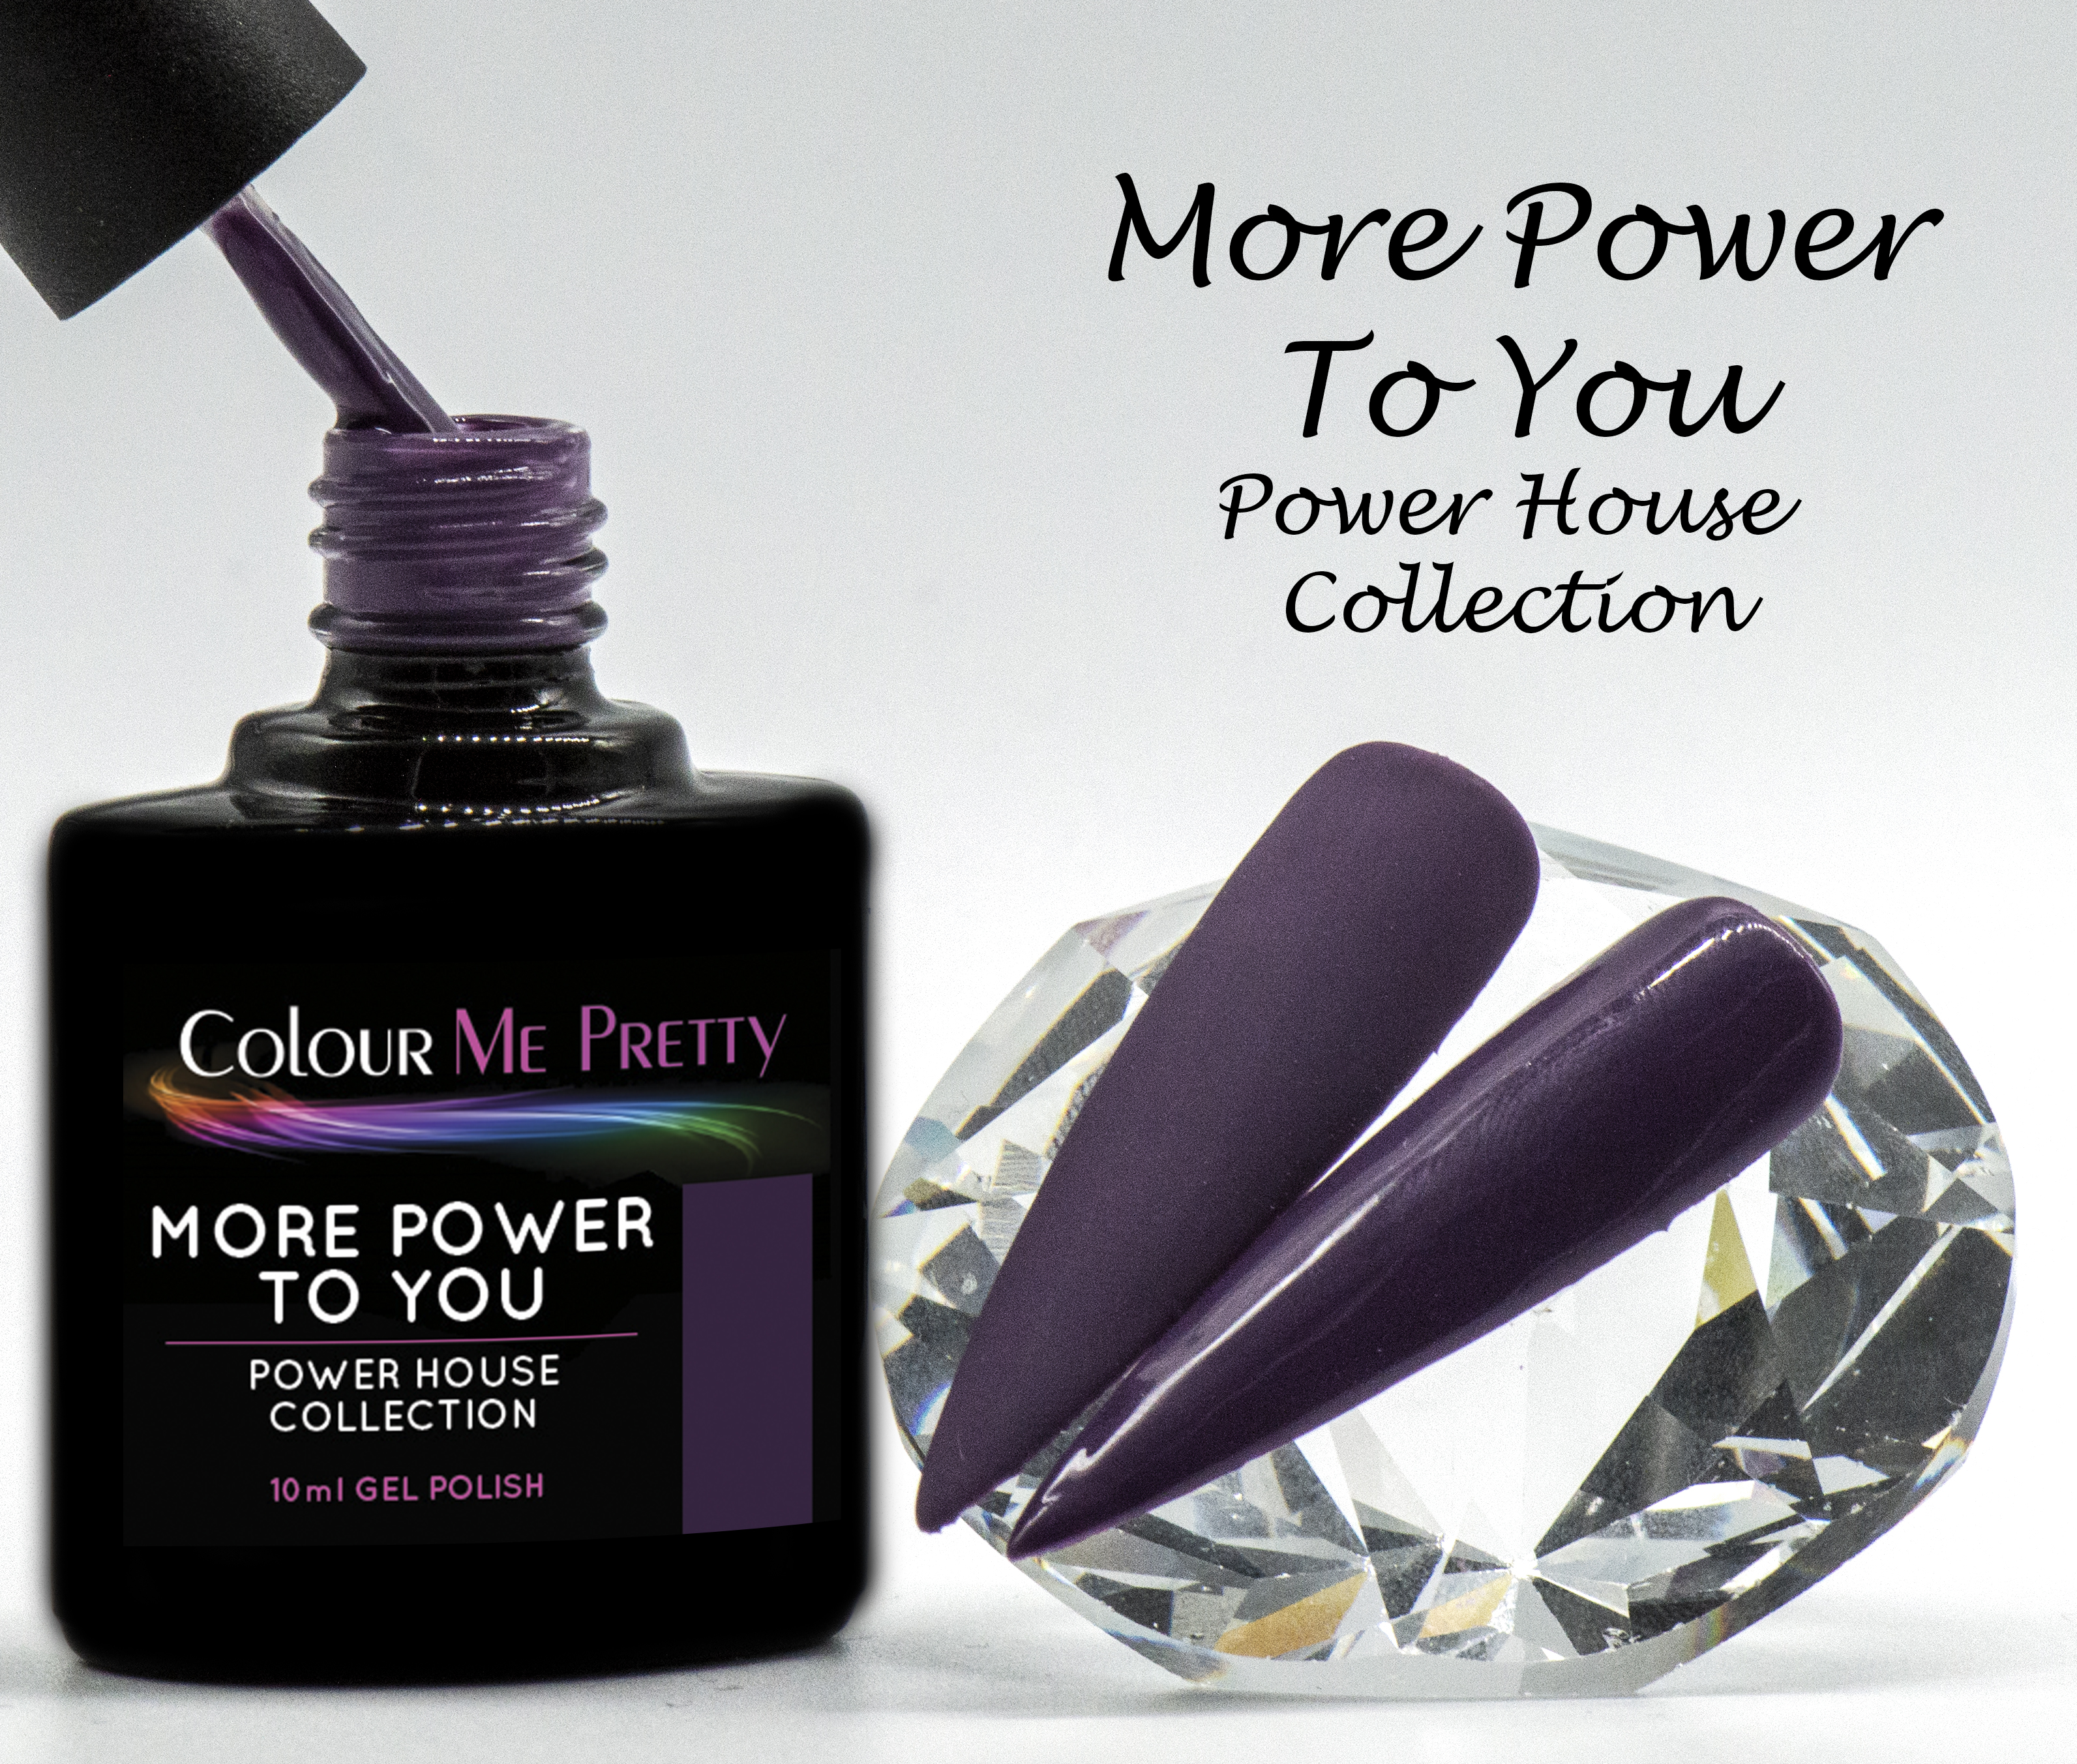 Power – More Power To You